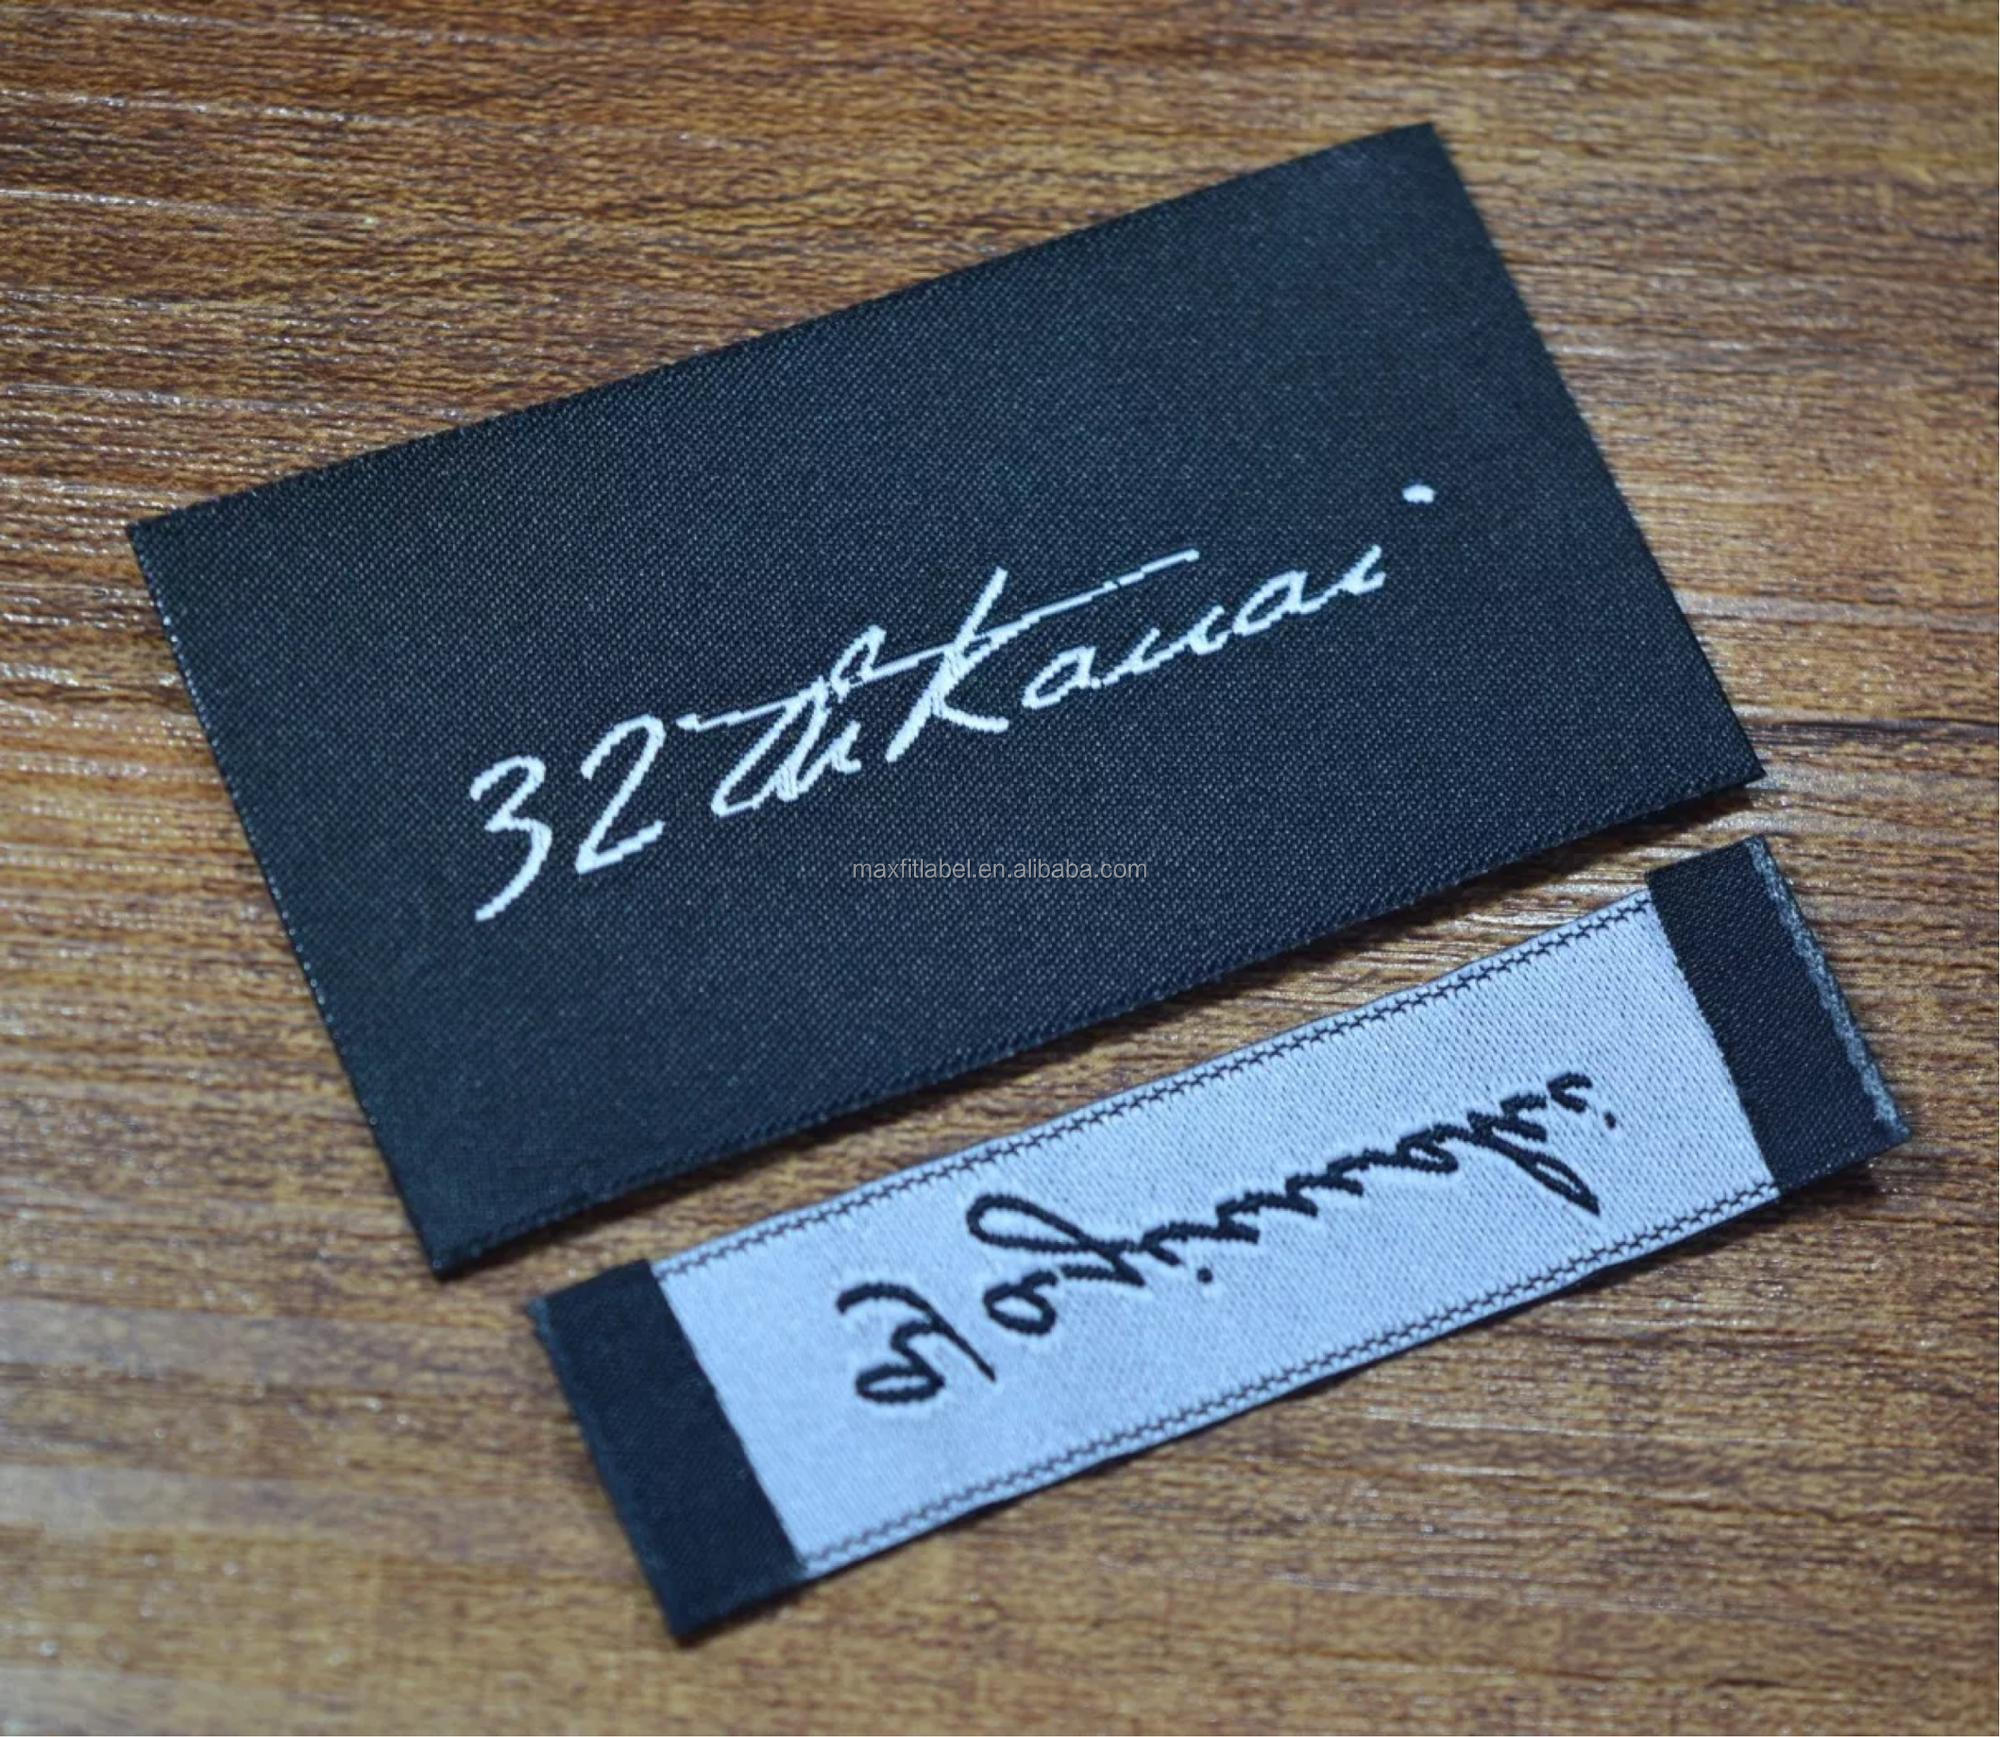 China factory custom high quality woven label clothing labels